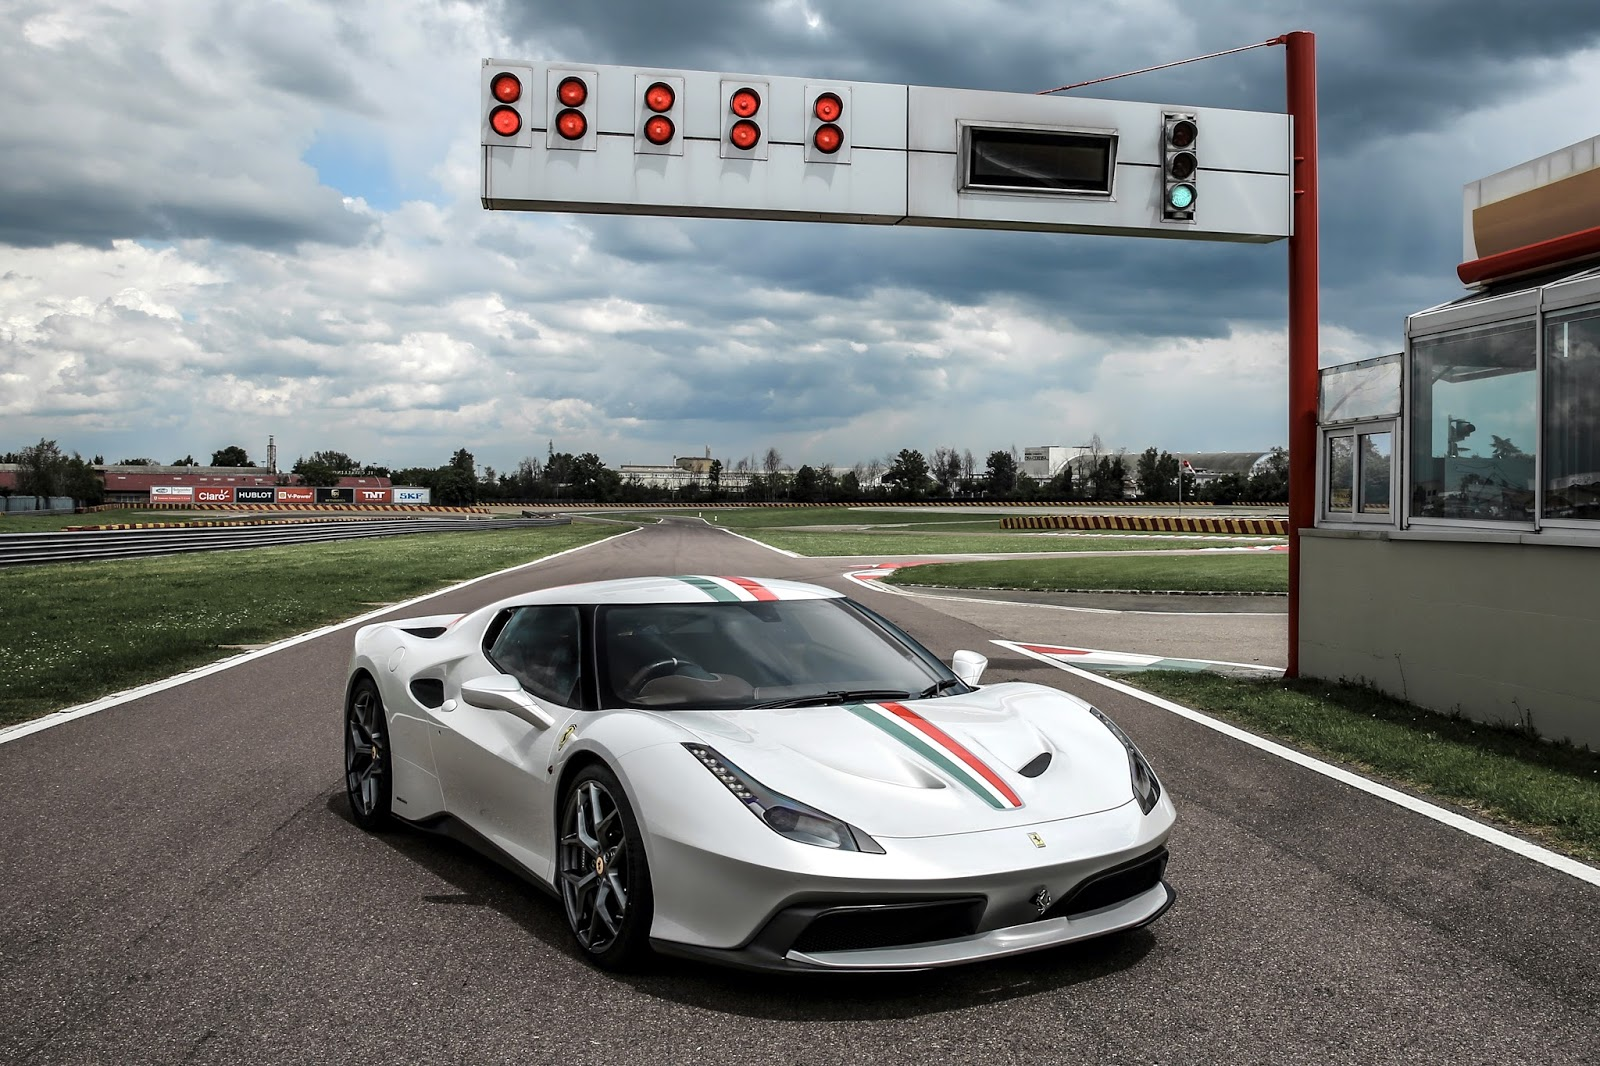 Motoring-Malaysia: SUPERCAR NEWS: The 458 MM Speciale - The latest ...